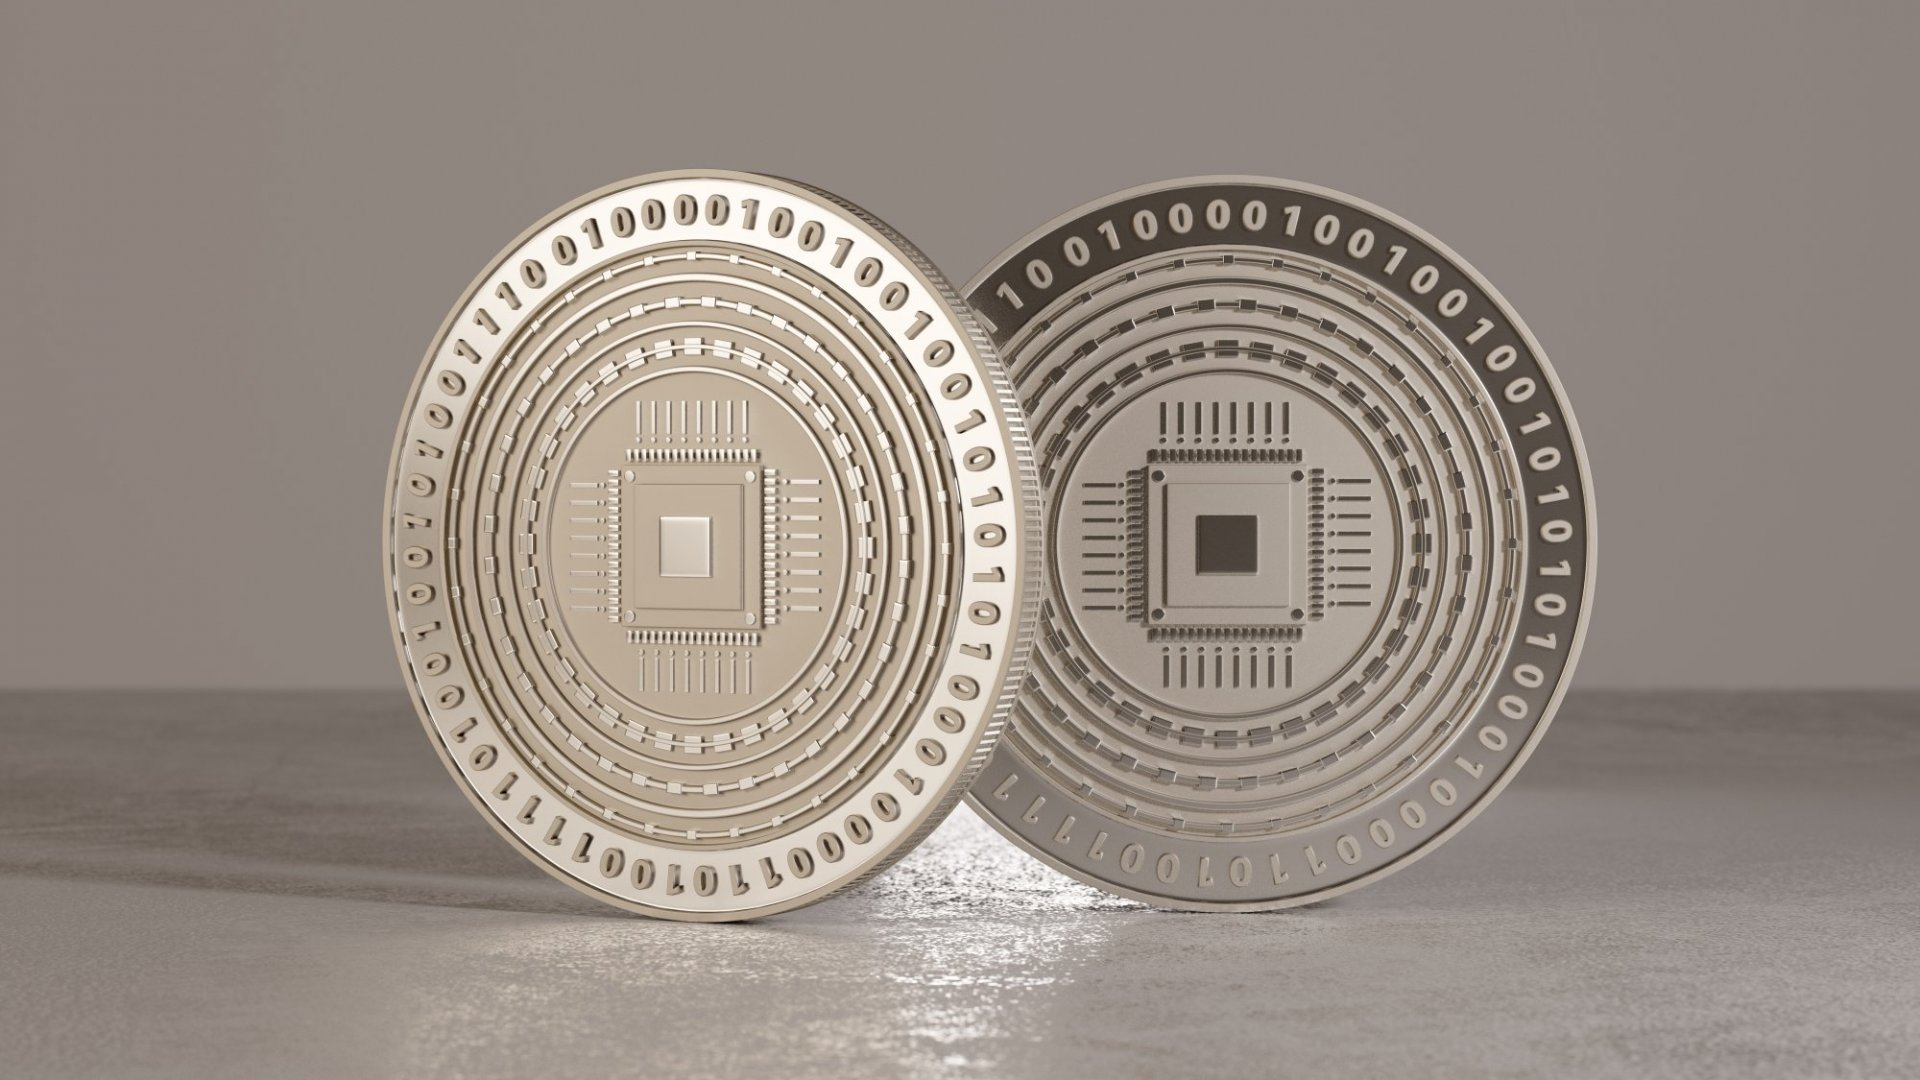 6 Up and Coming Cryptocurrencies